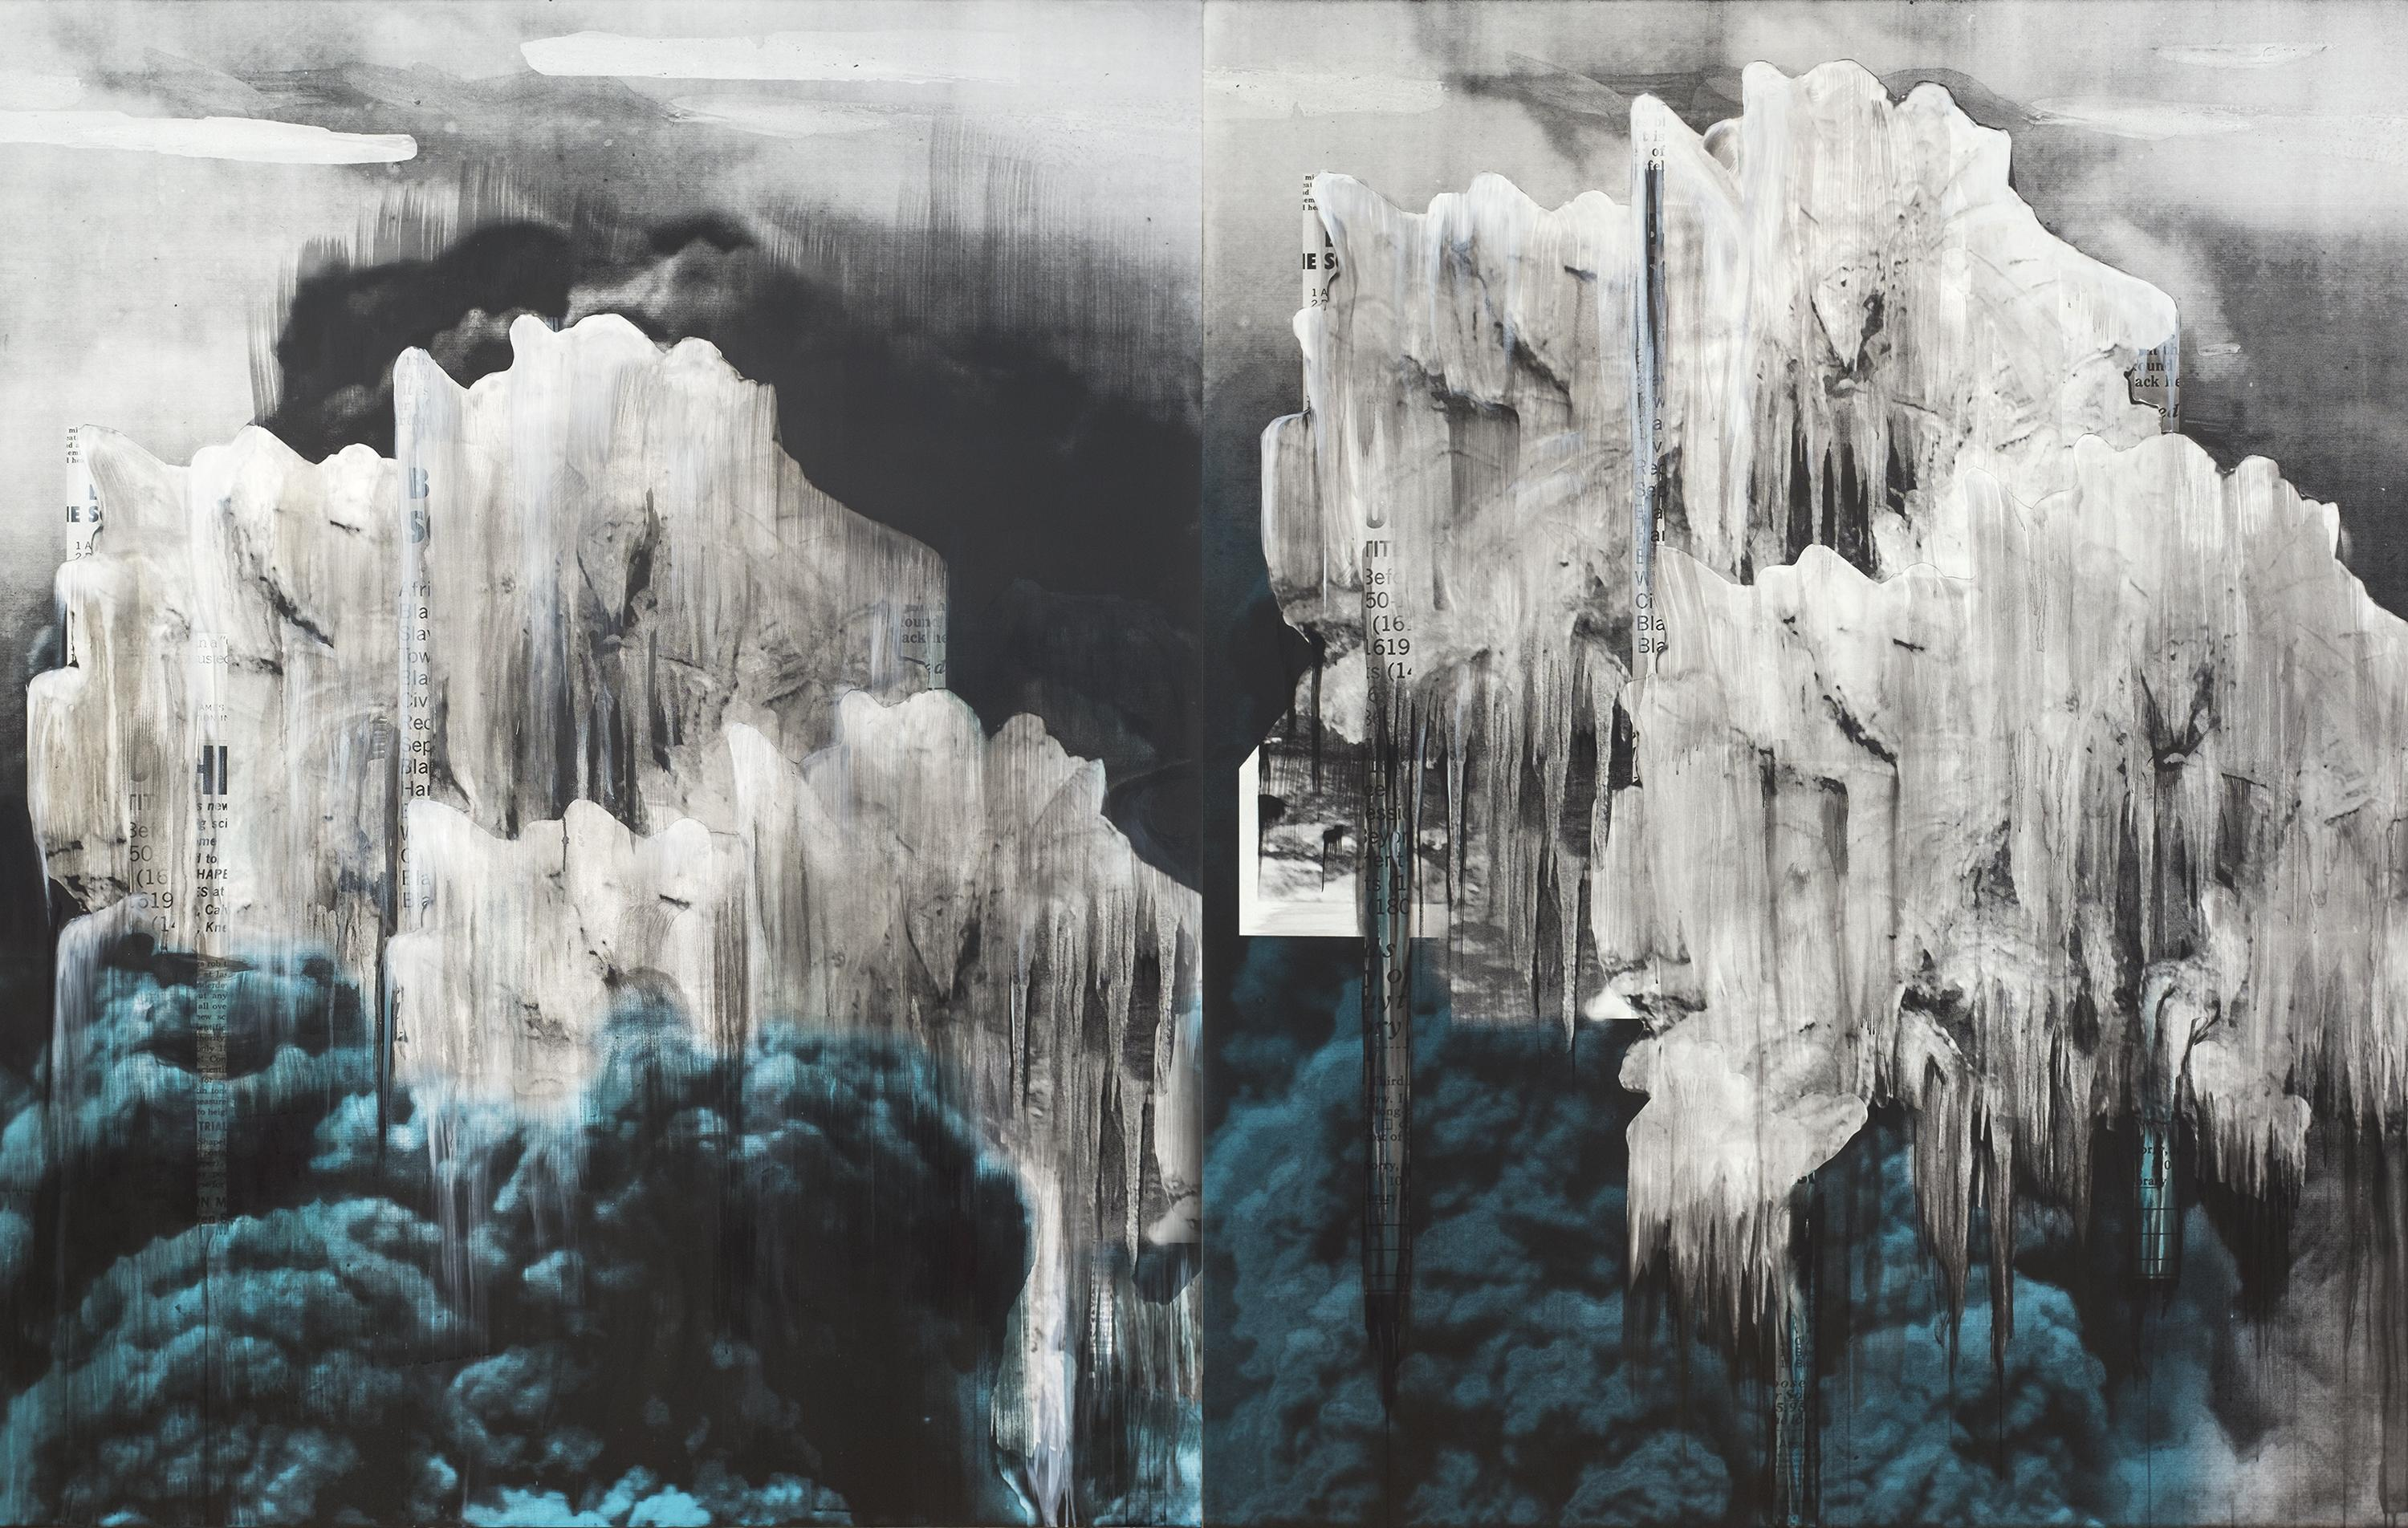 White icicle-like formations layered above plumes of blue smoke fill two side-by-side panels.